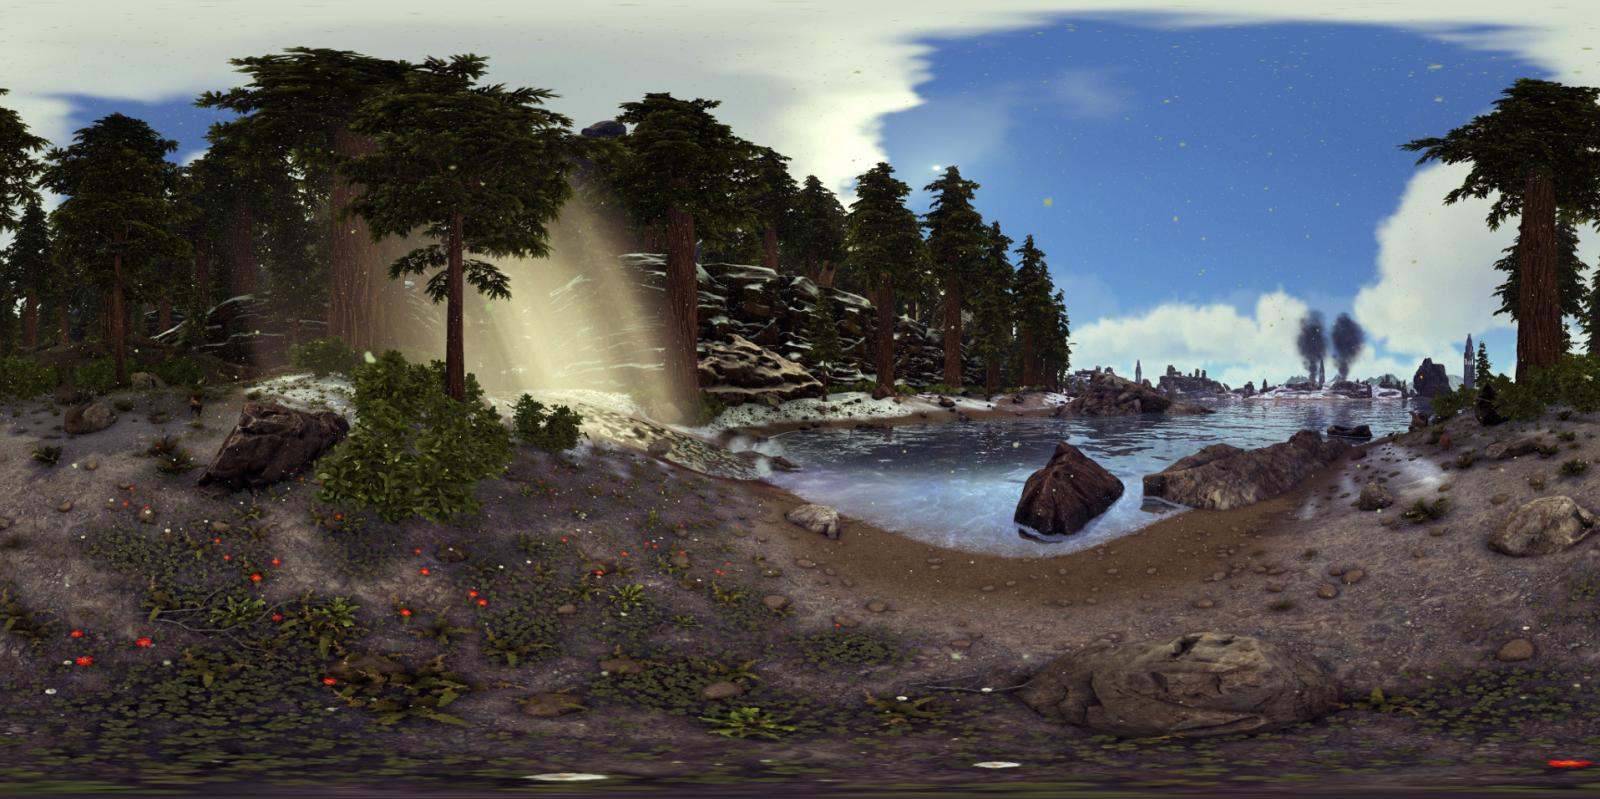 large.5882e6f5a5b46_FataL1ty-LightFromAbove-Panoramic360Stereoscopic3Dsta.jpg